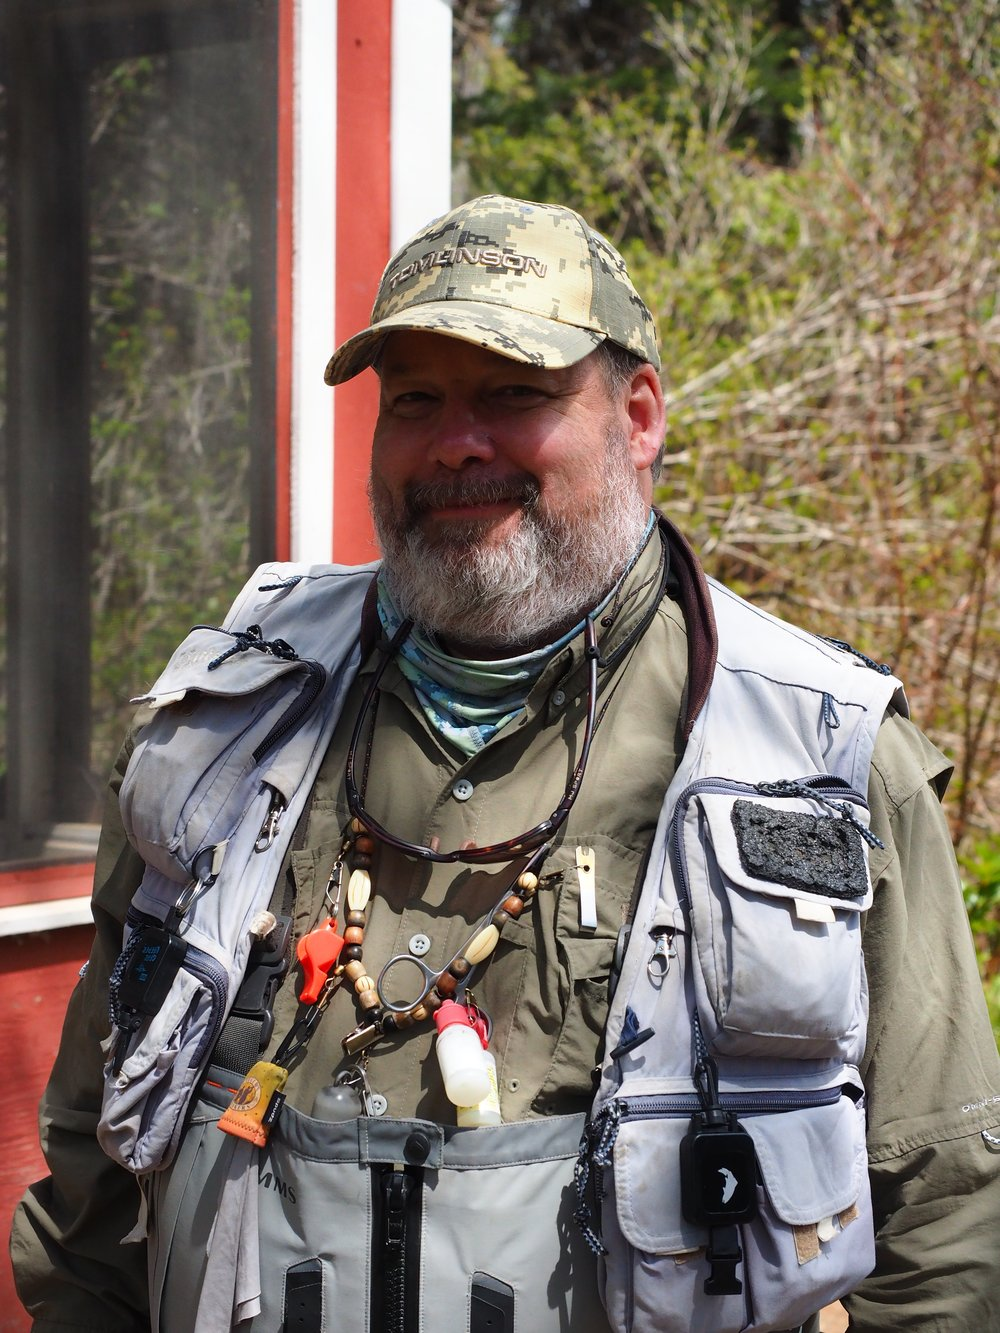 Our good friend Dan Greenberg ready for another season, may the salmon Gods smile upon you!